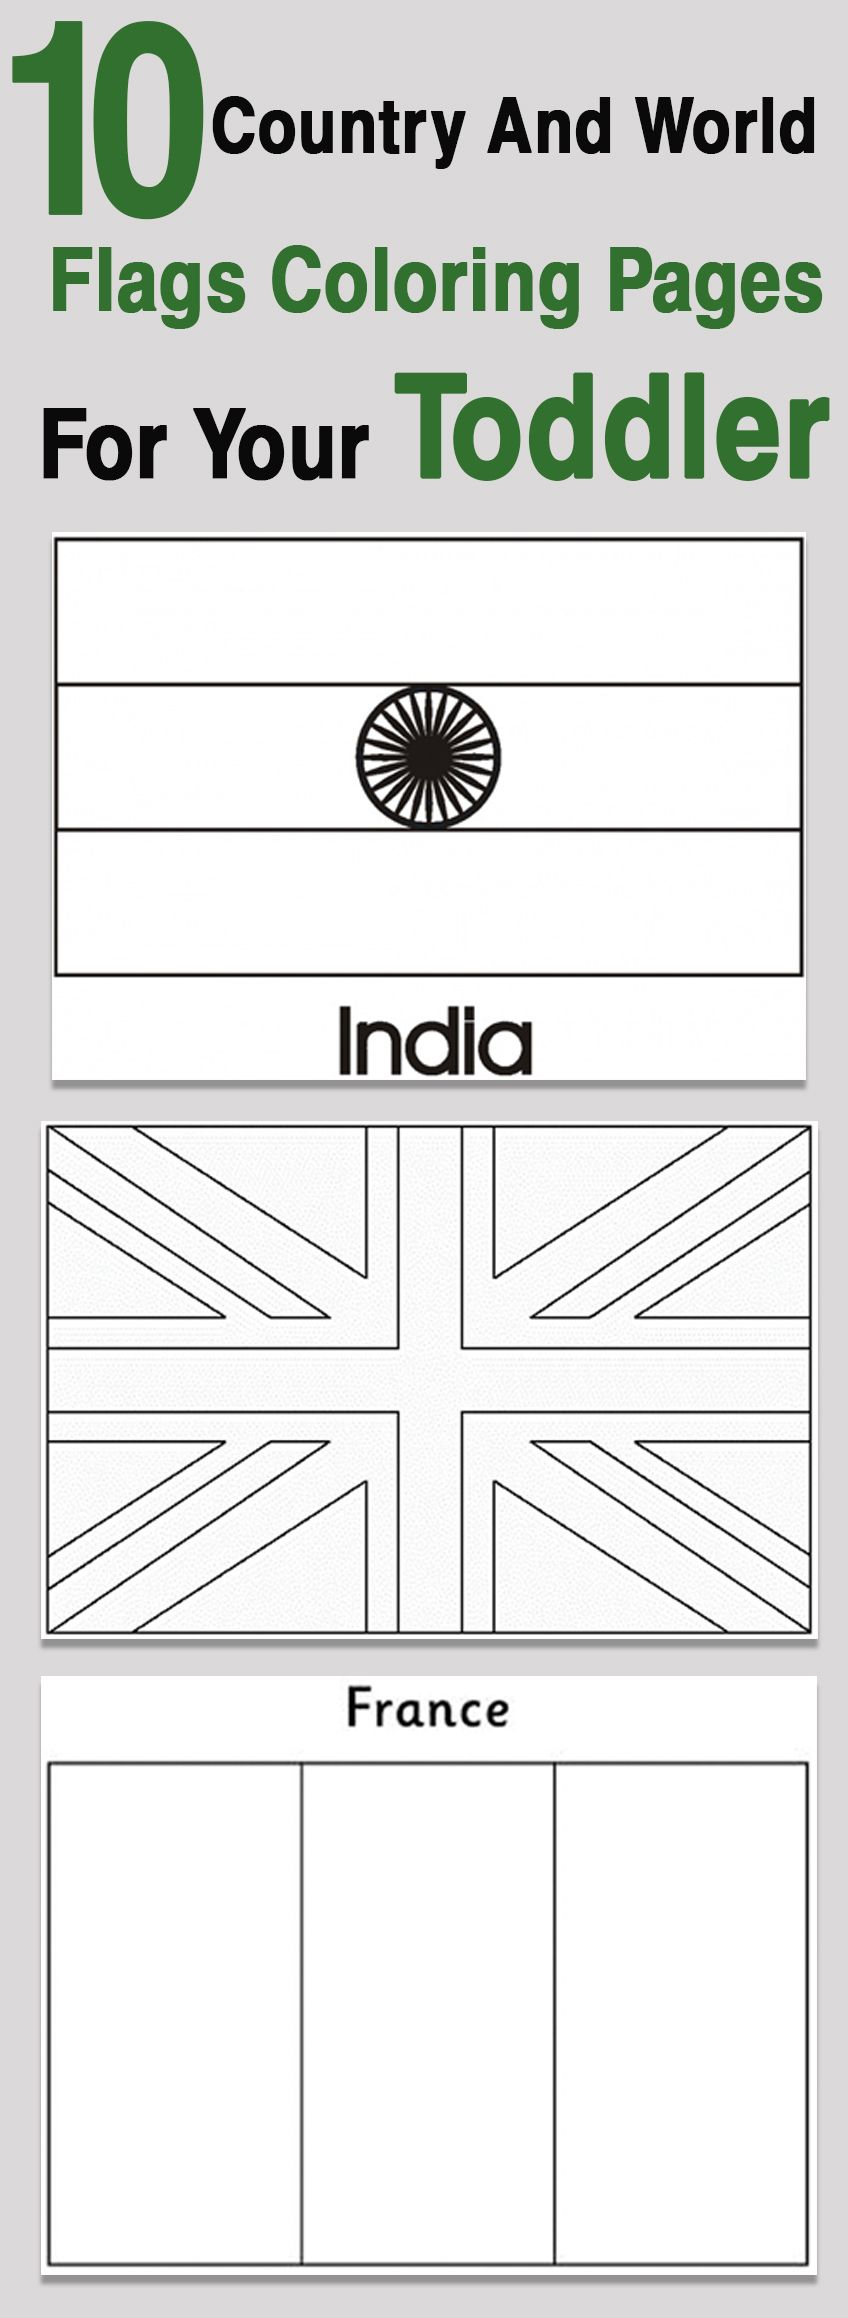 Top 10 Country And World Flags Coloring Pages For Your Toddler Flag Coloring Pages Flags Of The World Different Country Flags